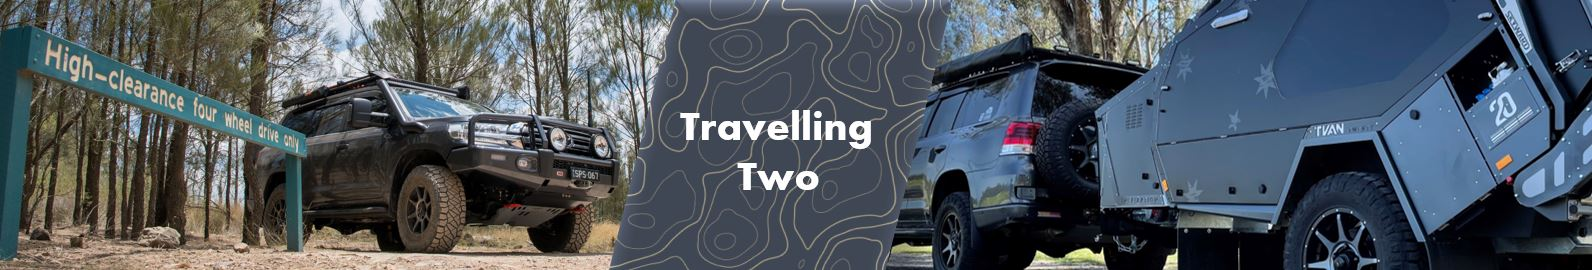 Travelling Two